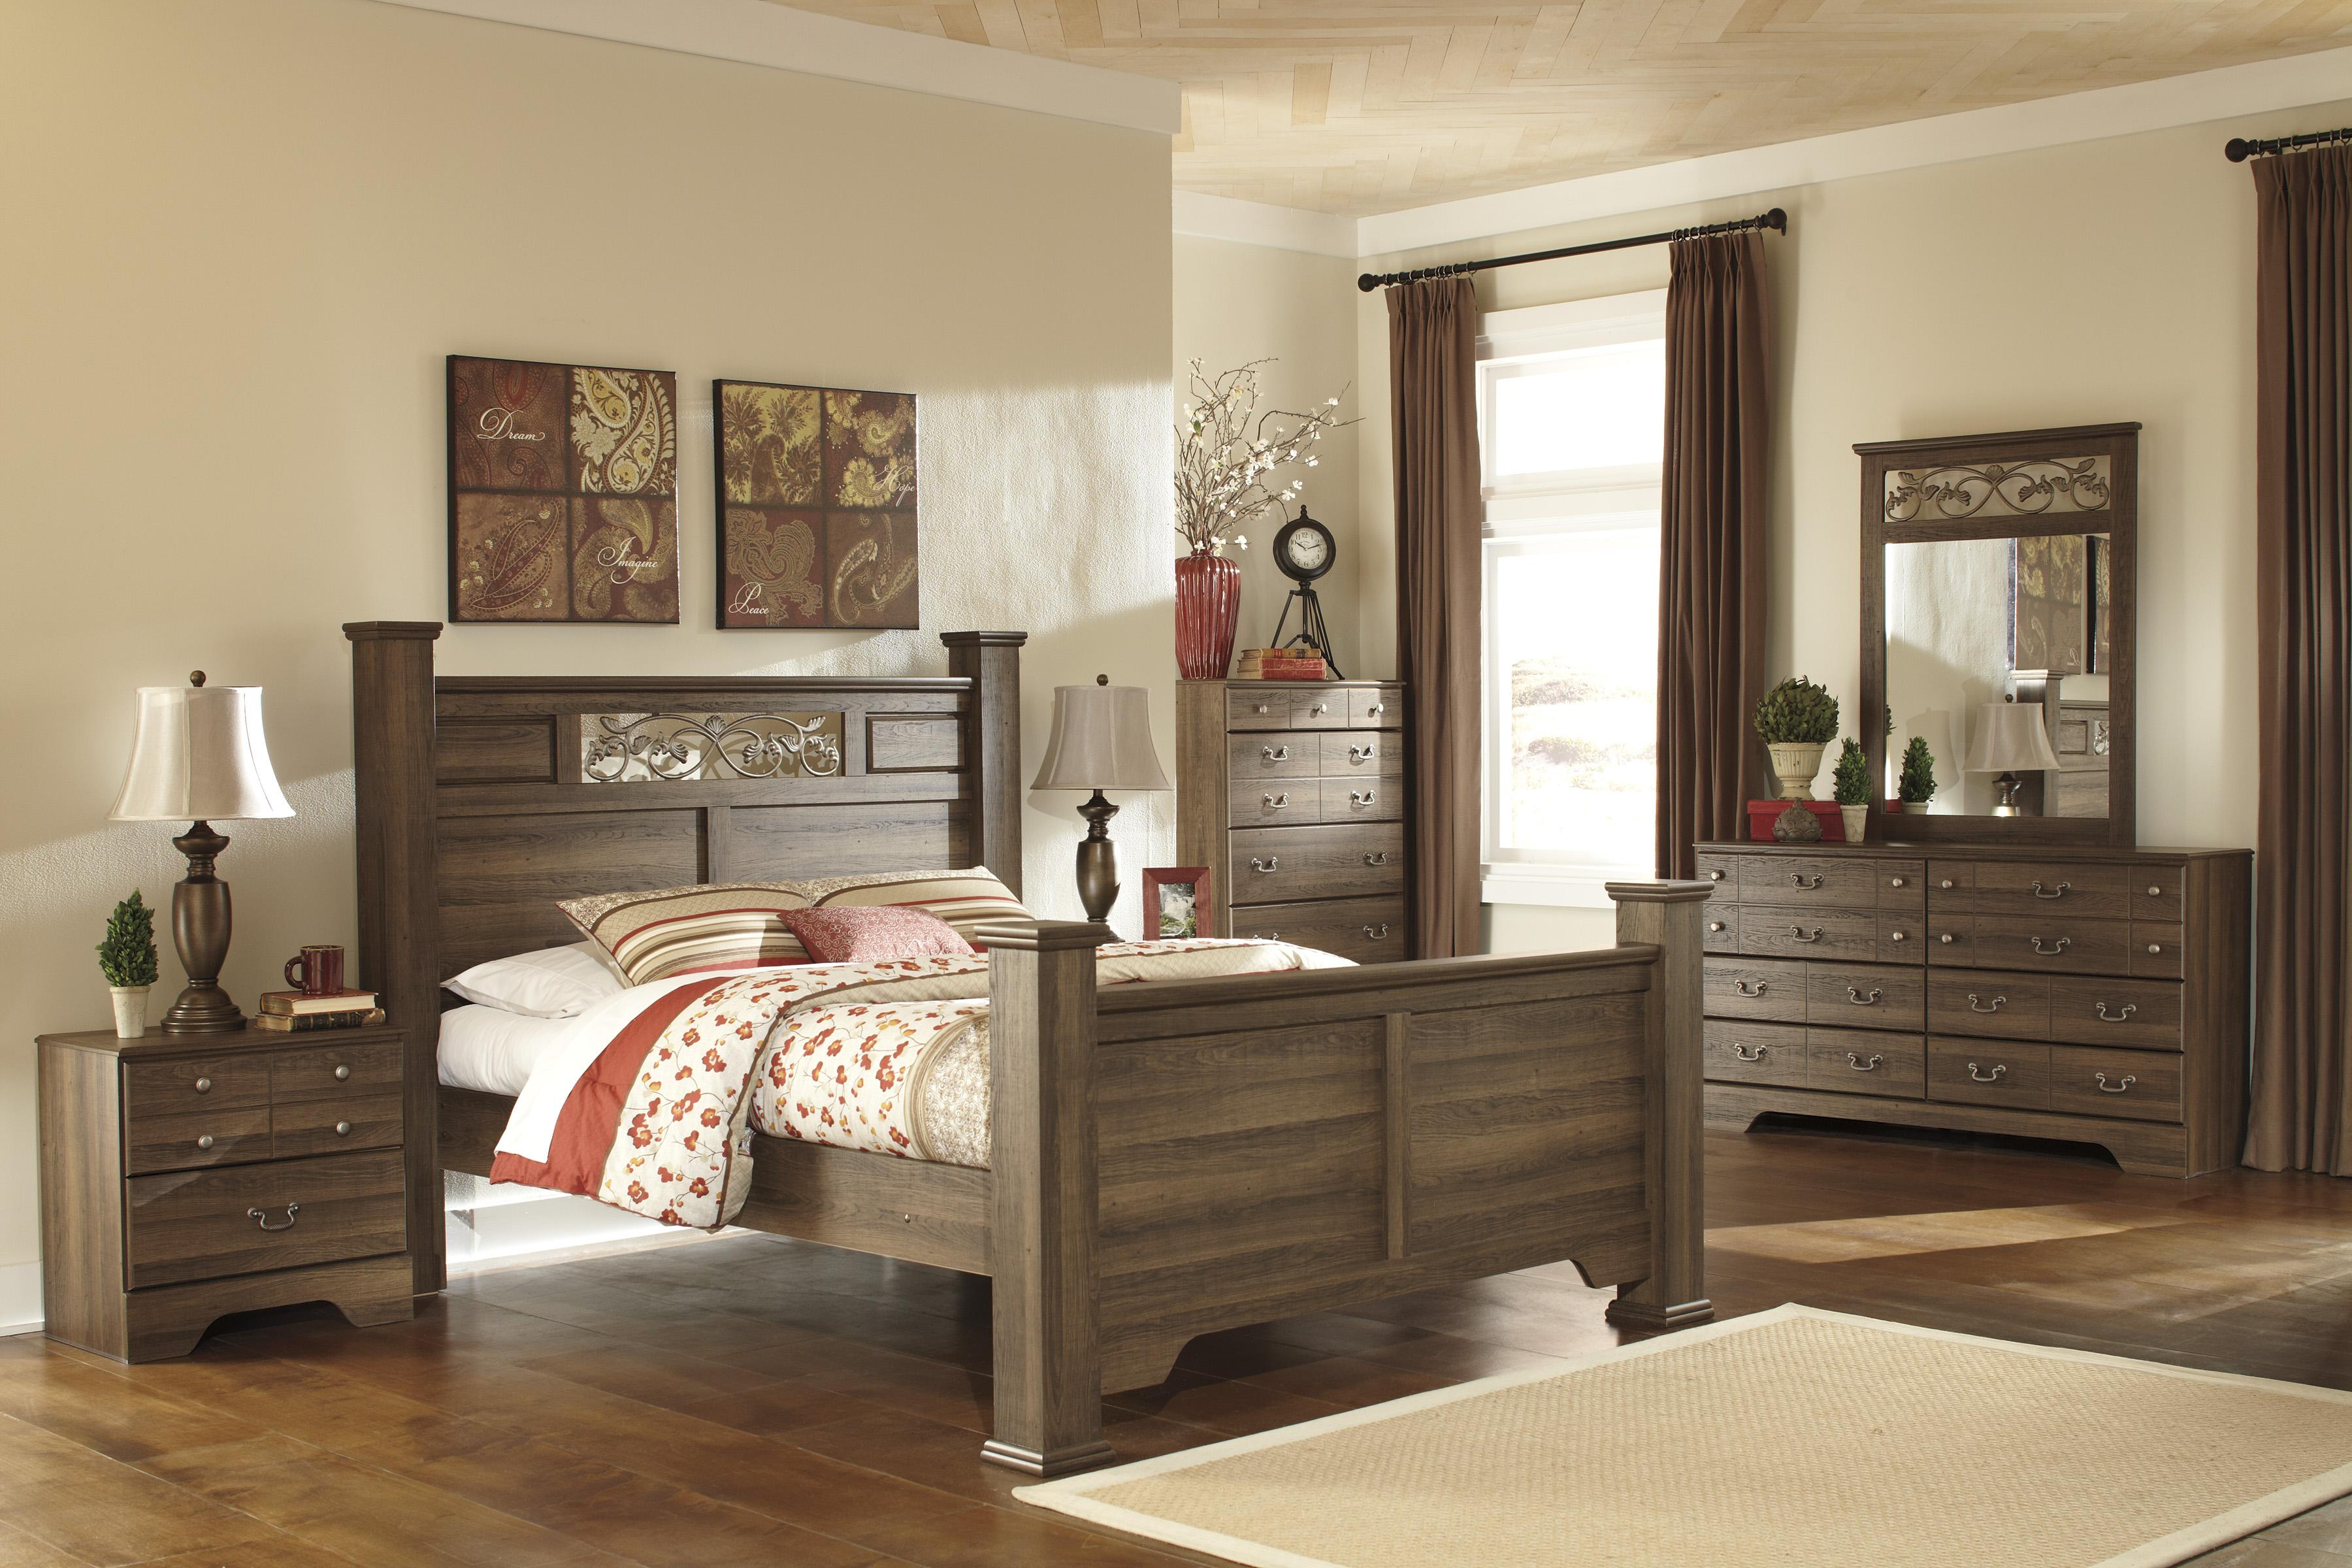 Signature Design by Ashley Allymore King Bedroom Group - Item Number: B216 K Bedroom Group 3